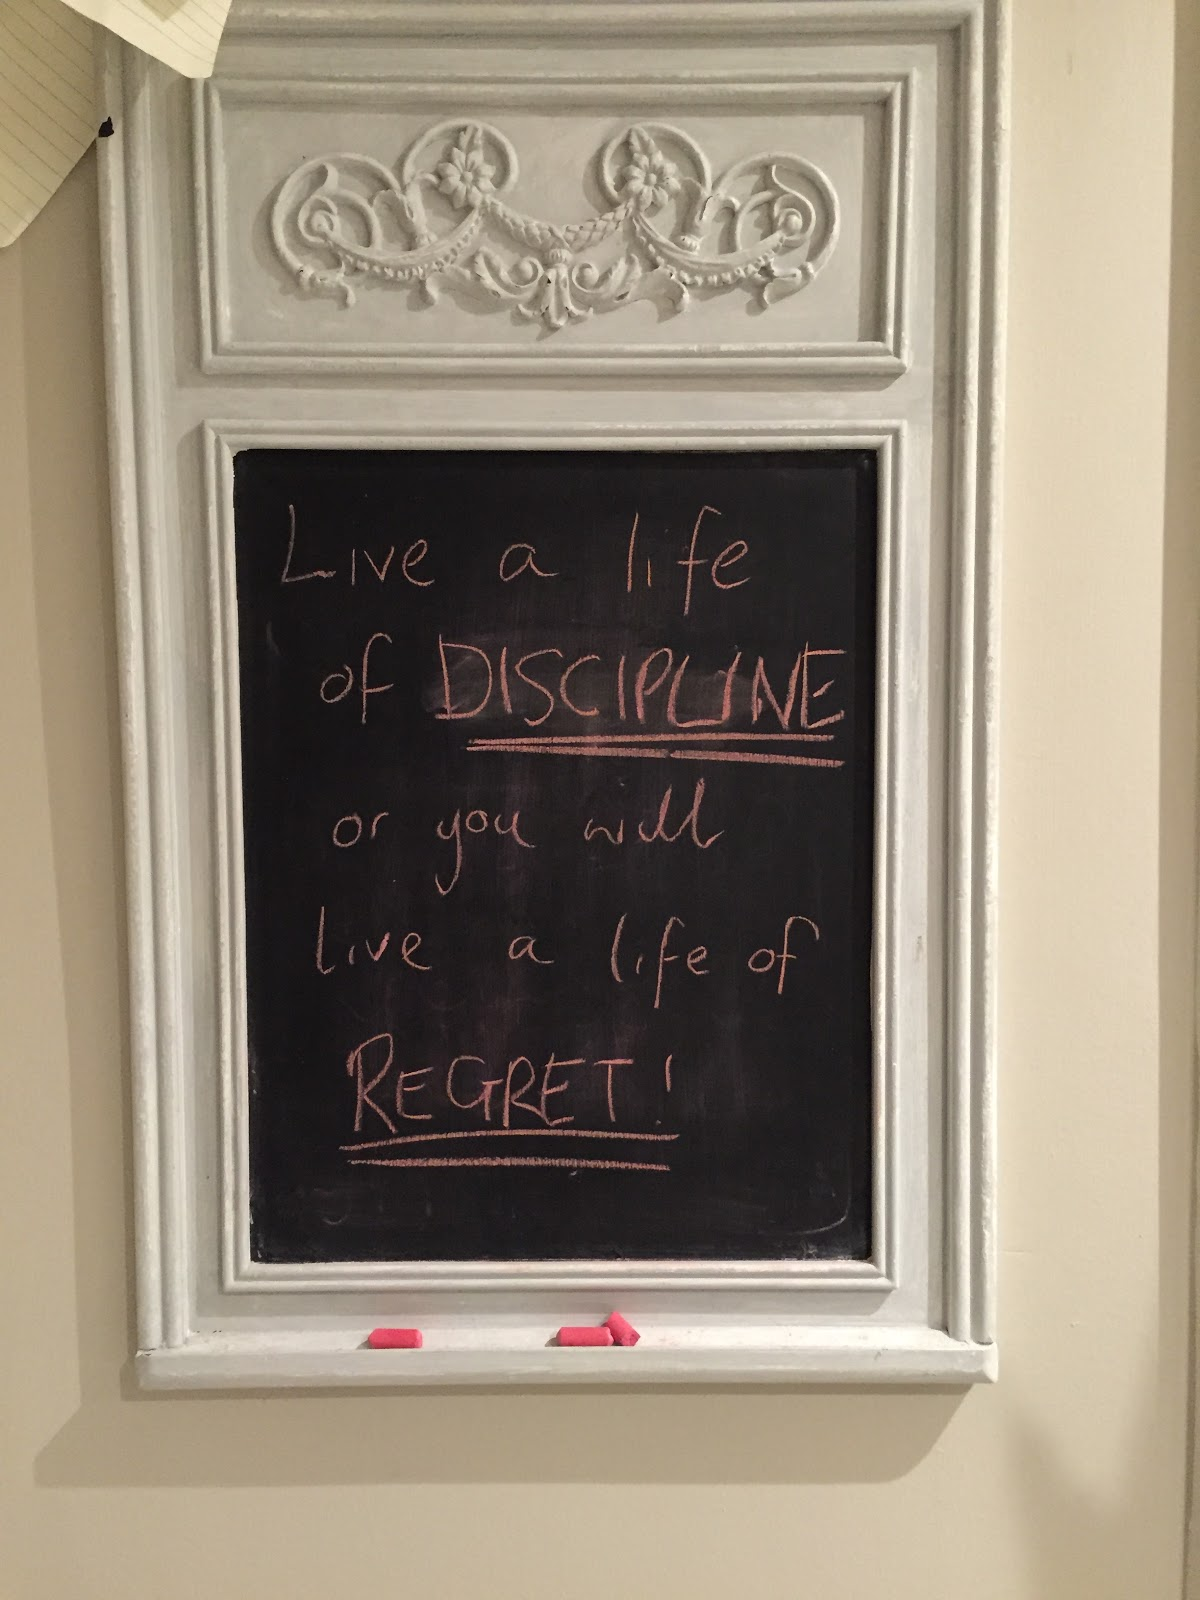 Live a life of DISCIPLINE or you will live a life of REGRET